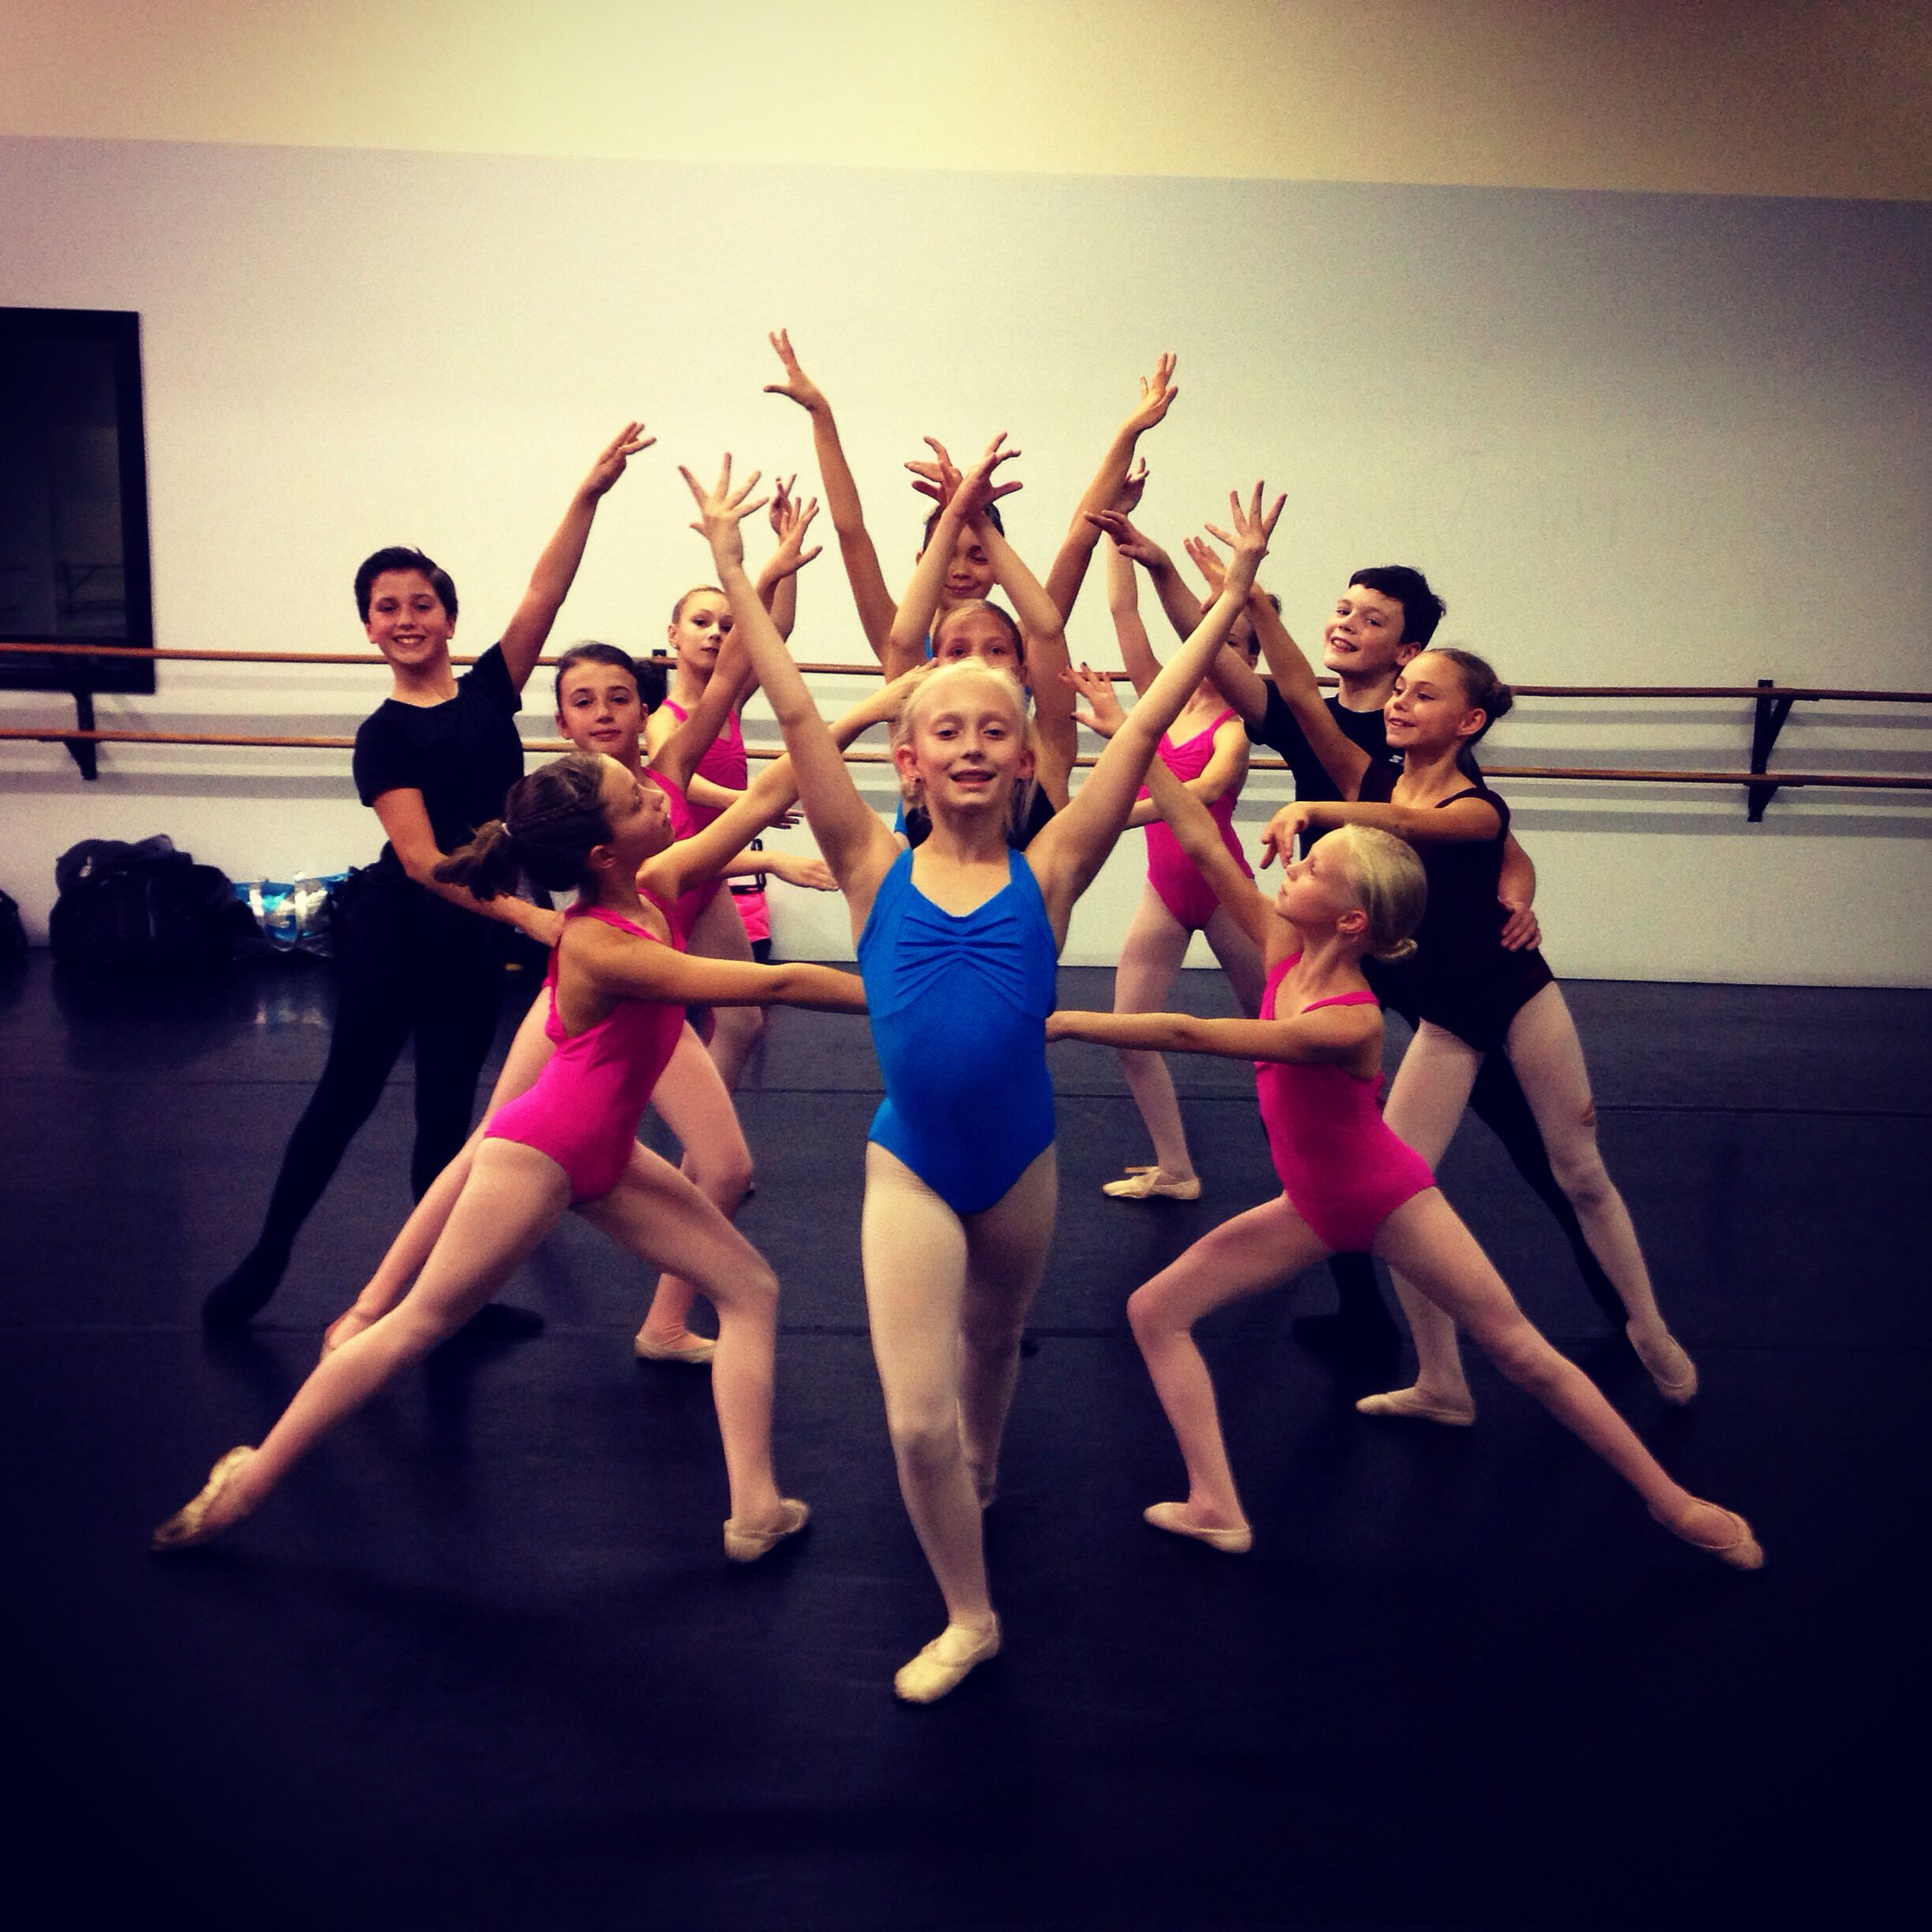 Having A Great Time Creating New Contemporary Ballet Work Today In Salt Lake City On These Lovely Young Dancers Fr Contemporary Ballet La Dance Performance Art